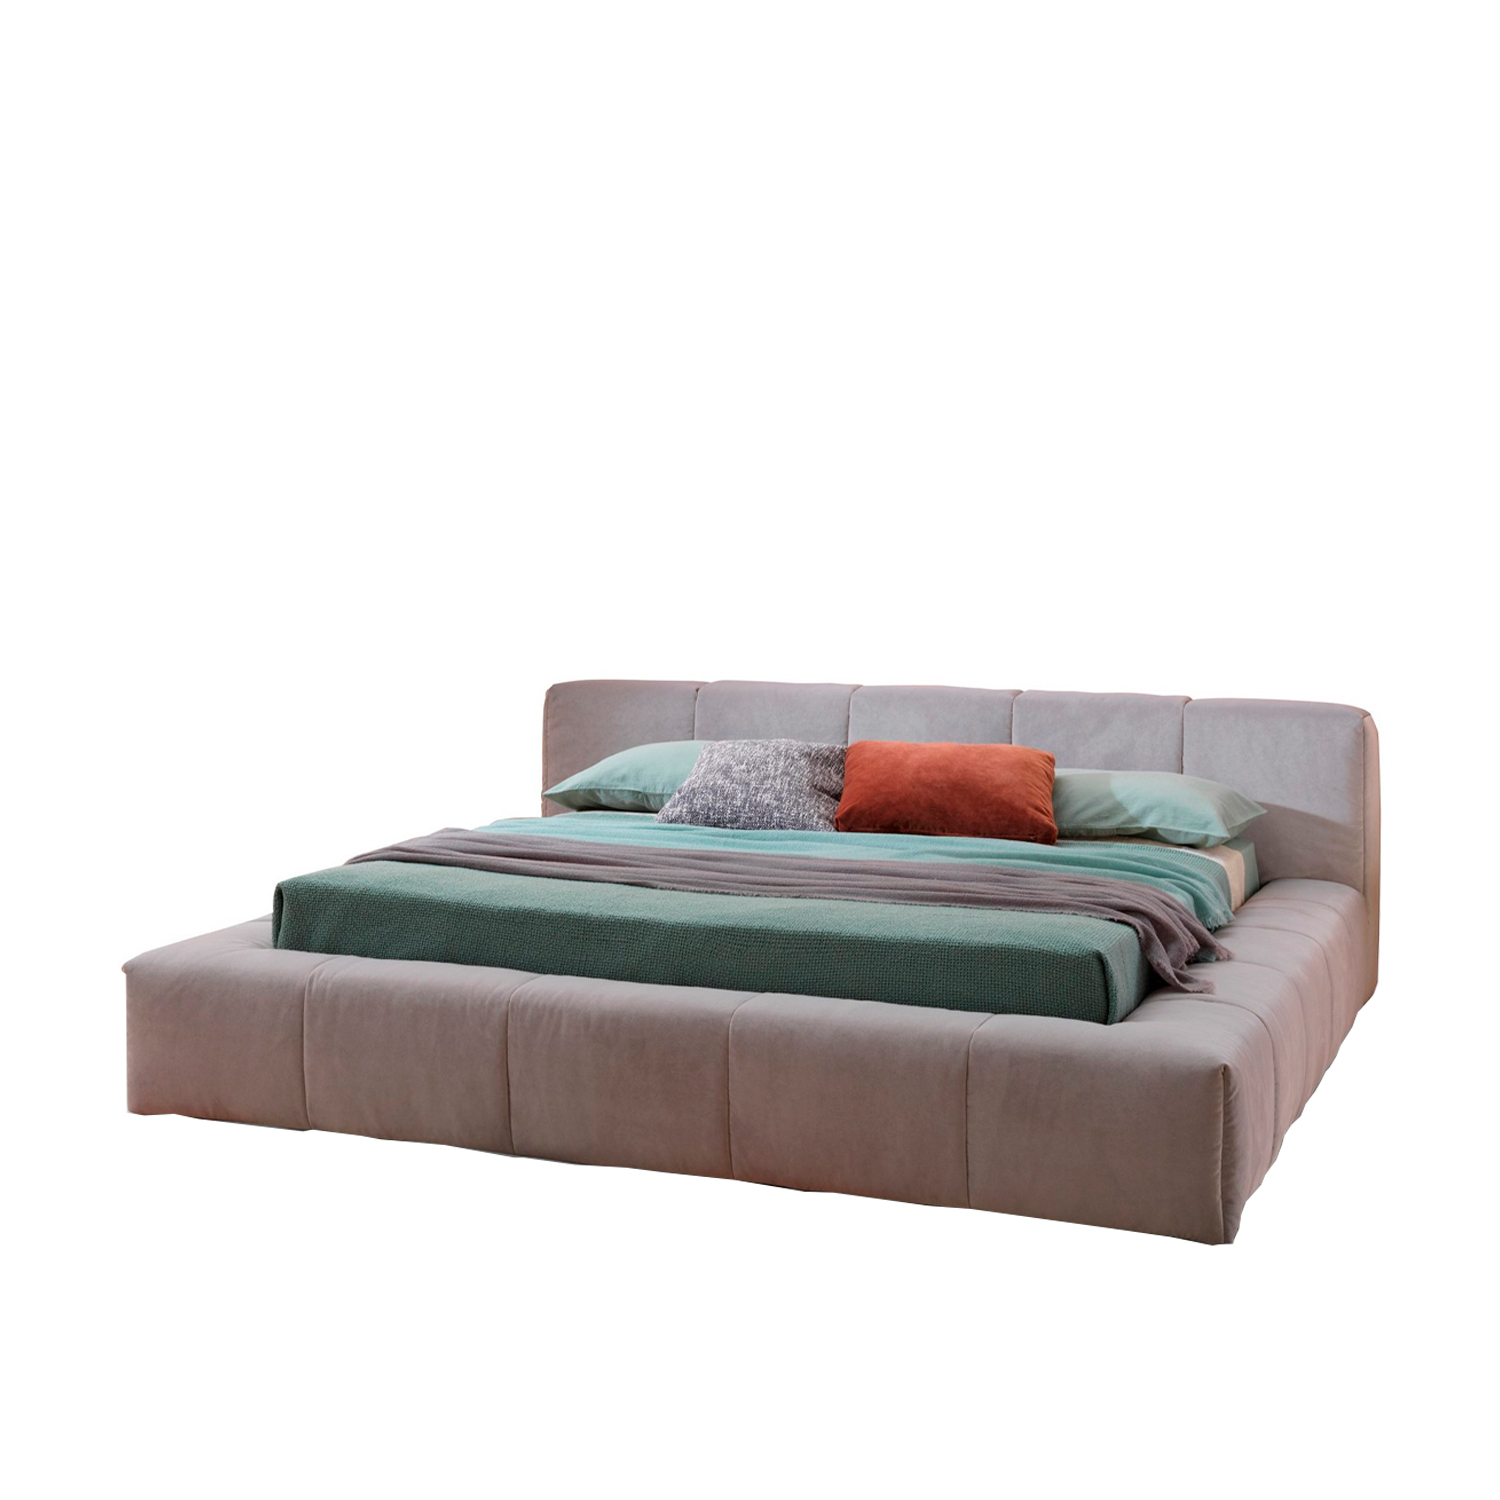 Pixel Box Large Bed - Pixel Box Large is the most voluminous option in the Pixel bed collection, completely enclosed by the soft and ample bed frame. Pixel Box Large most evidently recalls the iconic and generous rounded shapes of Saba's Pixel sofa.  This item is available in different sizes, upholstery and base options. Please enquire for more information and prices.  Materials Headboard in multilayer wood padded with polyurethane foam and clothed with velfodera coupled to resin 100gr/sqm. The covering fabric is coupled with polyester fiber 380gr/sqm. Air version includes the bed base with wooden slats and the bed frame is in wood covered with velfodera coupled to polyurethane foam. Box version has got bed frame in multilayer wood padded with polyurethane foam and clothed with velfodera coupled to resin 100gr/sqm. Feet in metal bronze painted with brass terminal or white painted with black nickel terminal for Air version. In wood black painted h 4 cm for Box version. | Matter of Stuff